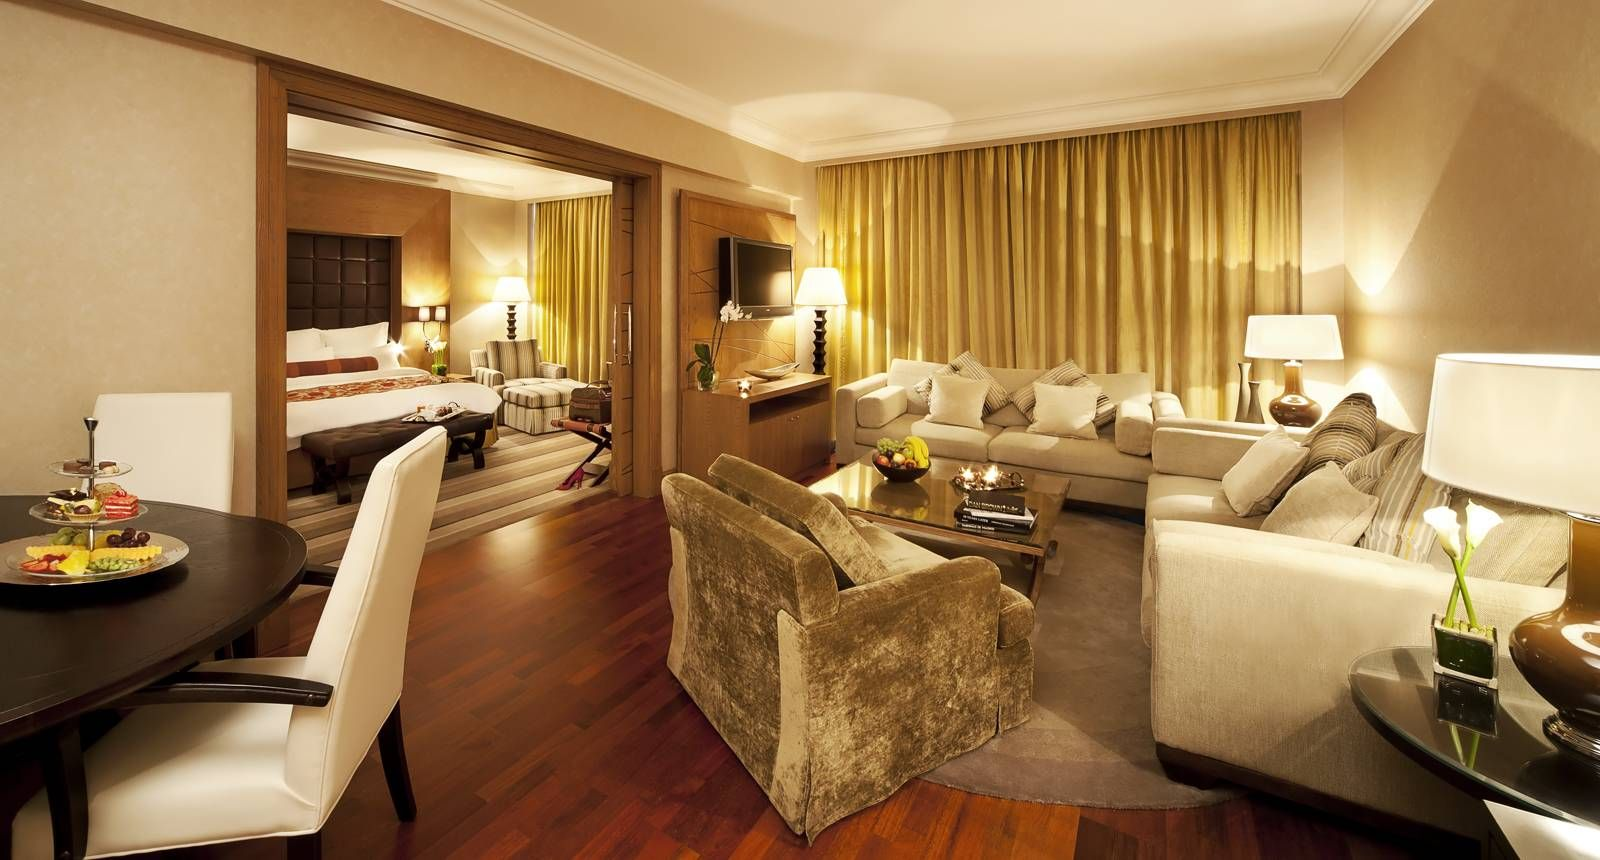 . The basics of a good hotel room design   Hotel Room Design   Hotel